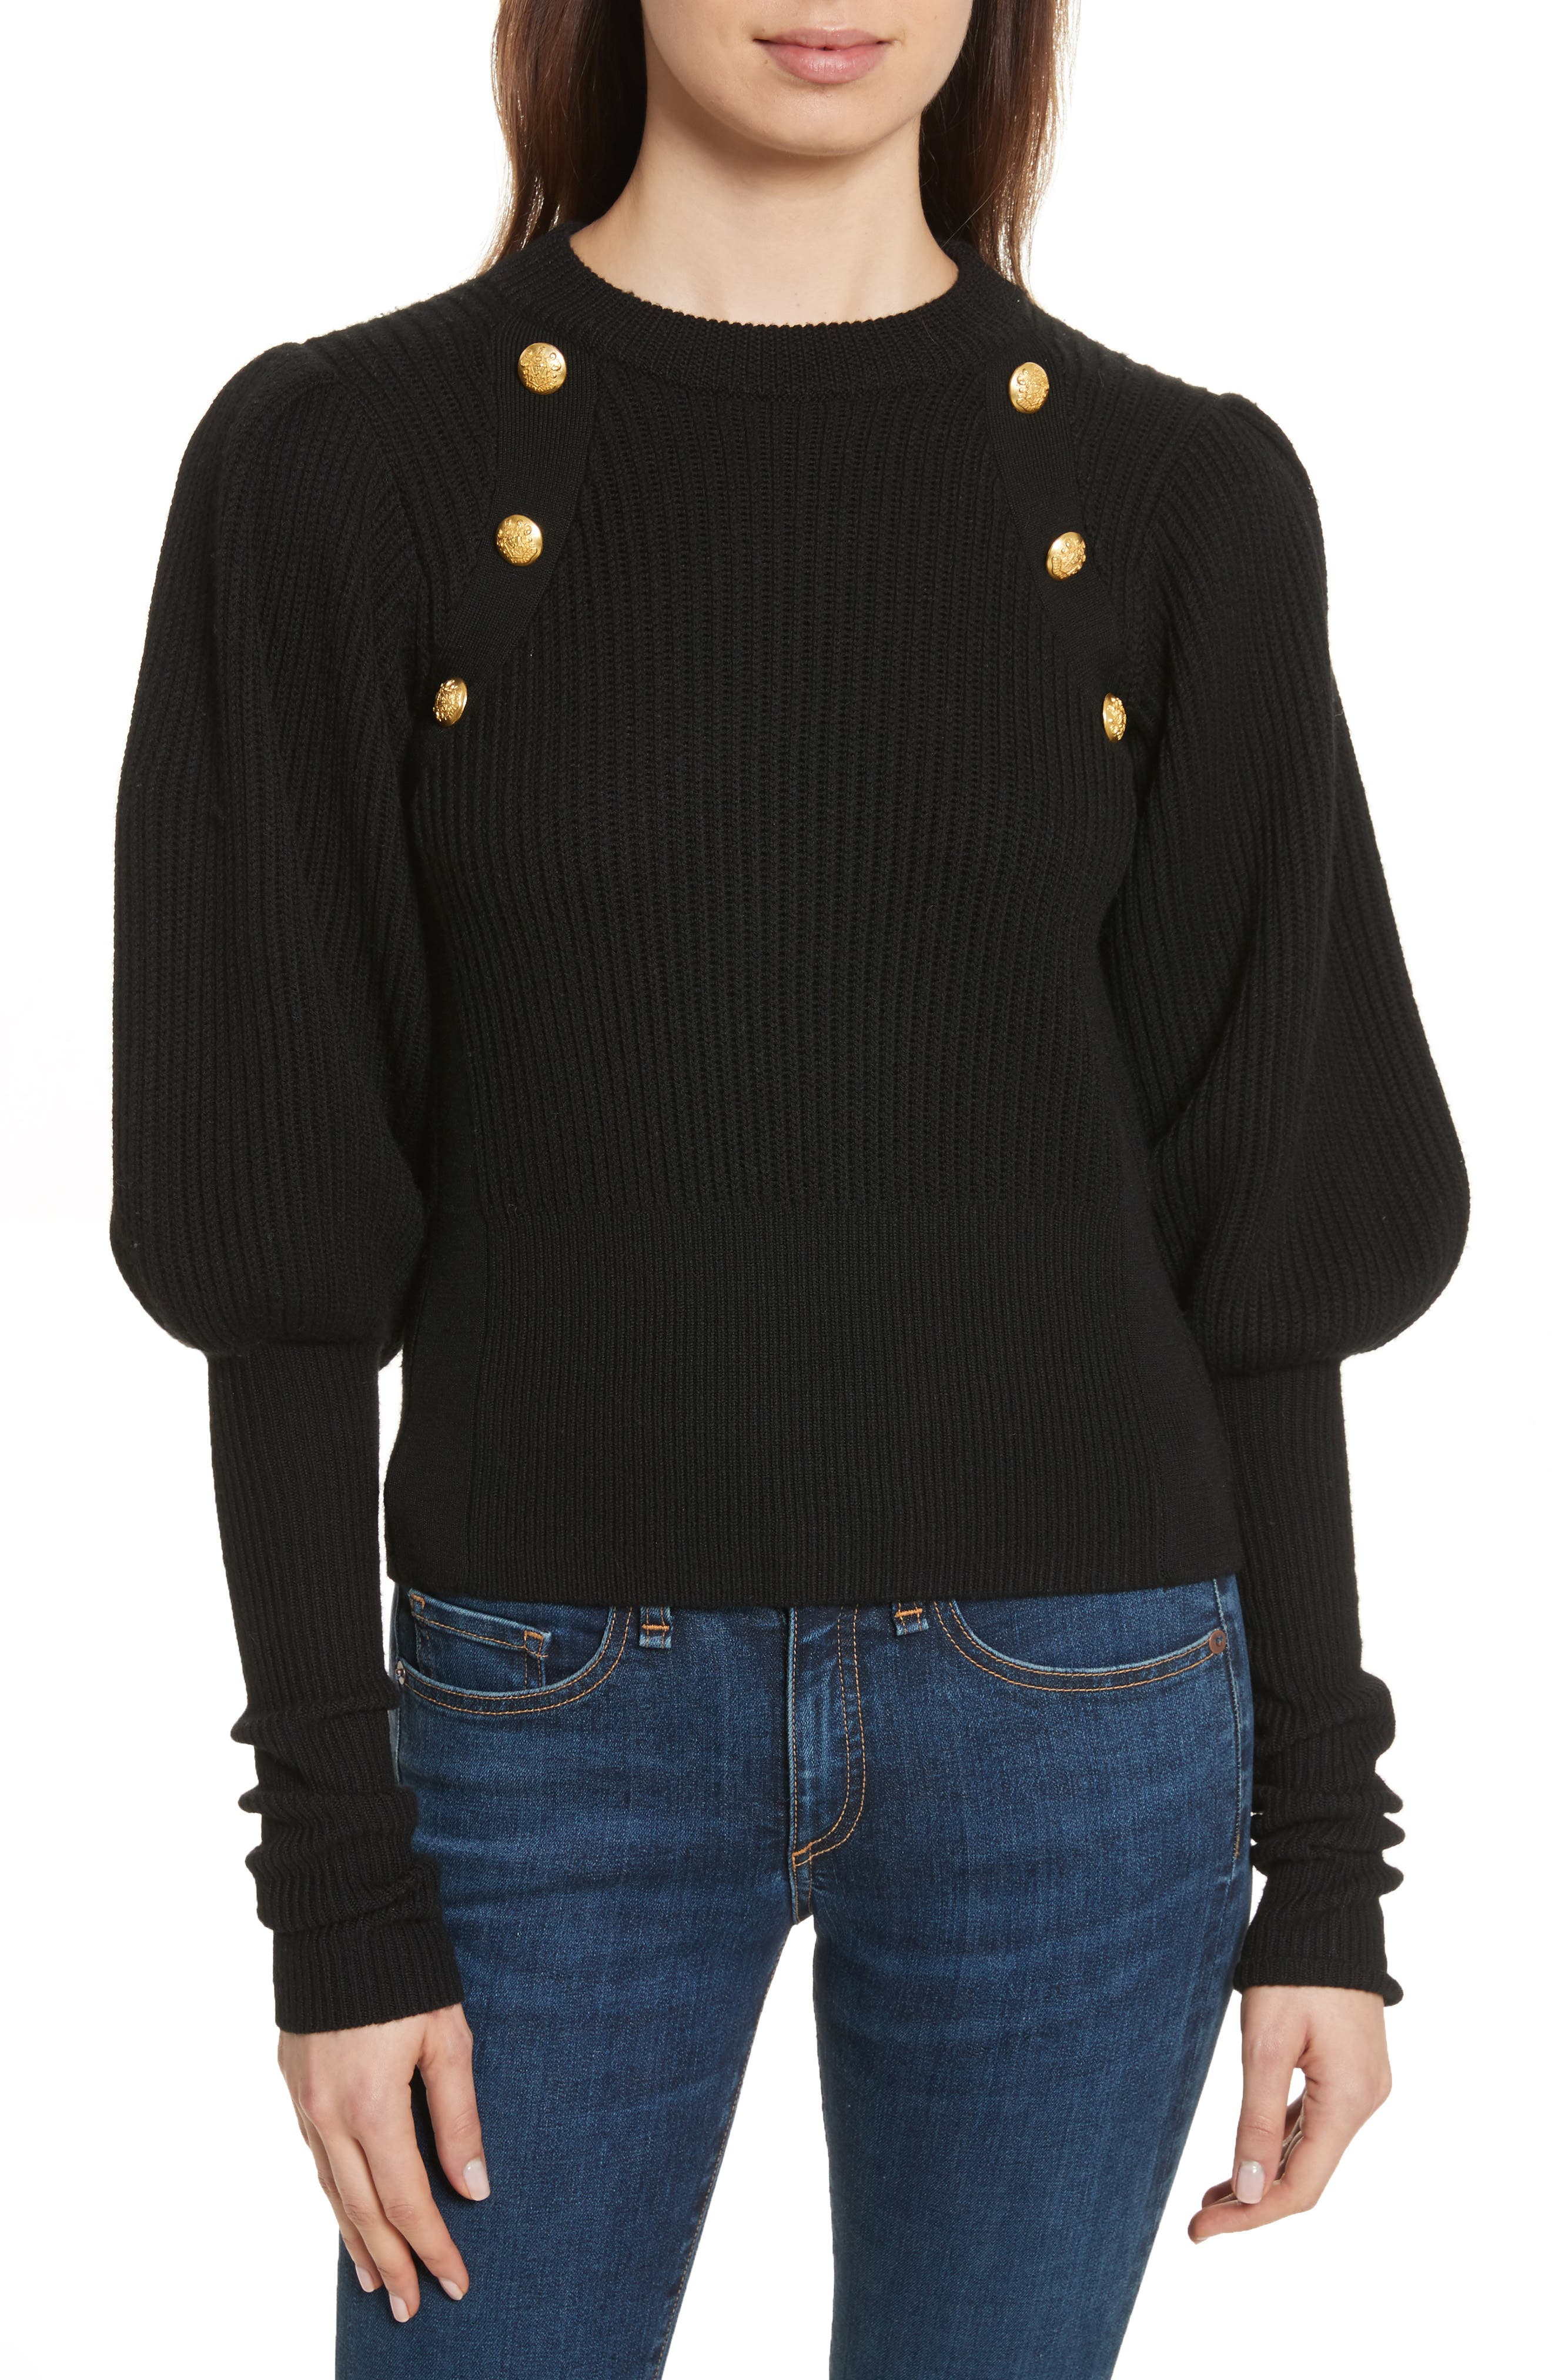 Jude Leg of Mutton Sleeve Sweater,                             Main thumbnail 1, color,                             Black